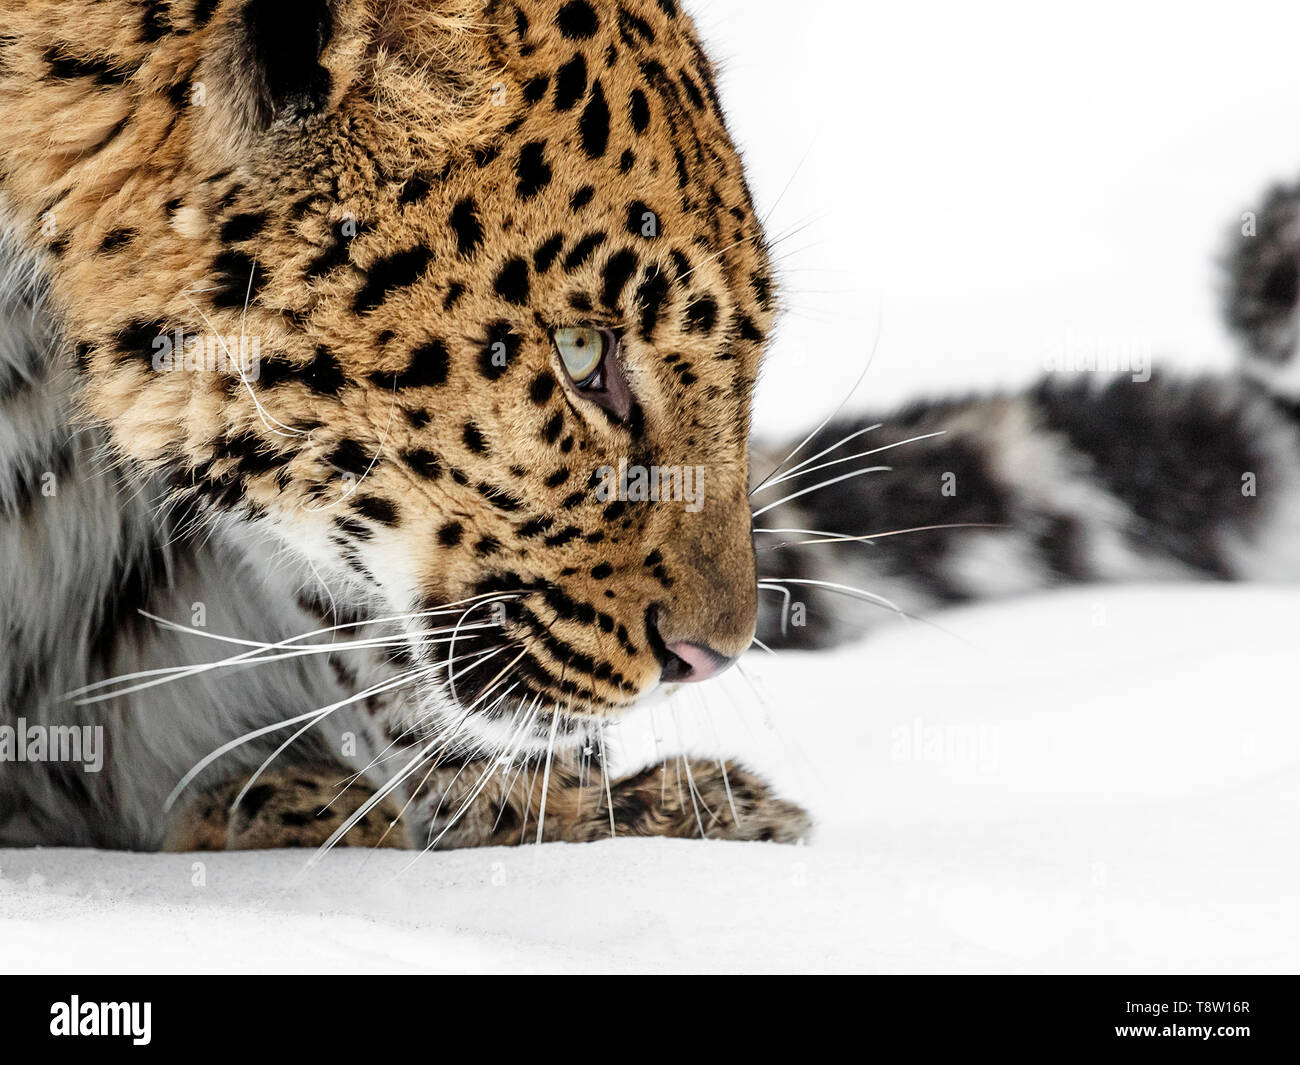 The Amur leopard is a leopard subspecies of SE Russia and NE China. It is Critically Endangered with approximately 60 left in the wild. - Stock Image